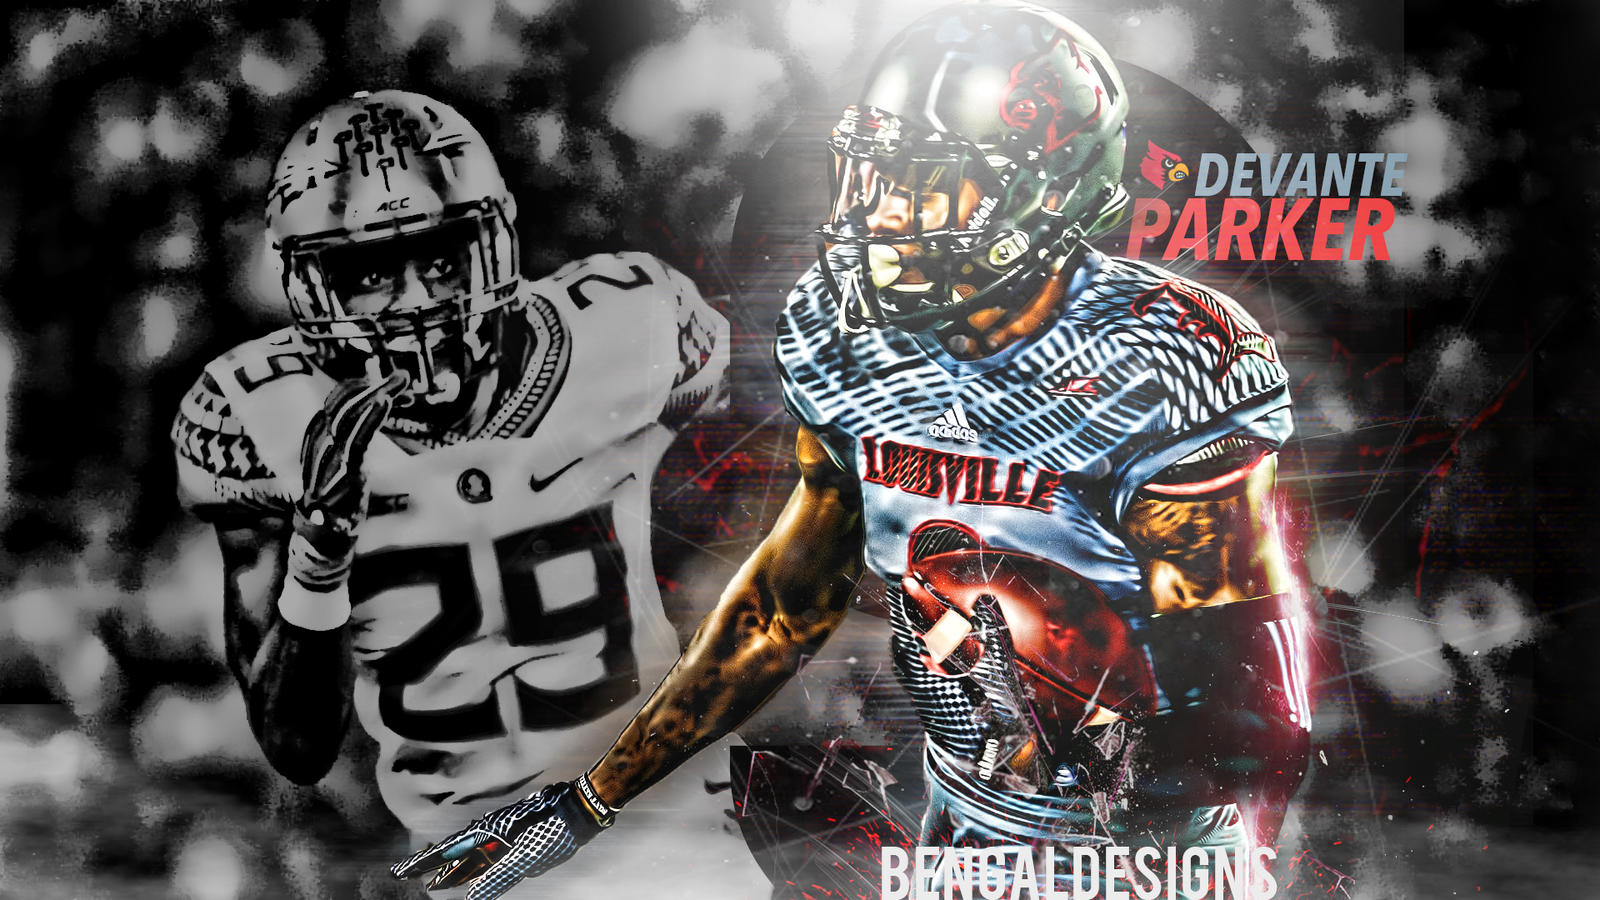 Devante parker wallpaper by bengal by bengalbro on deviantart devante parker wallpaper by bengal by bengalbro voltagebd Choice Image